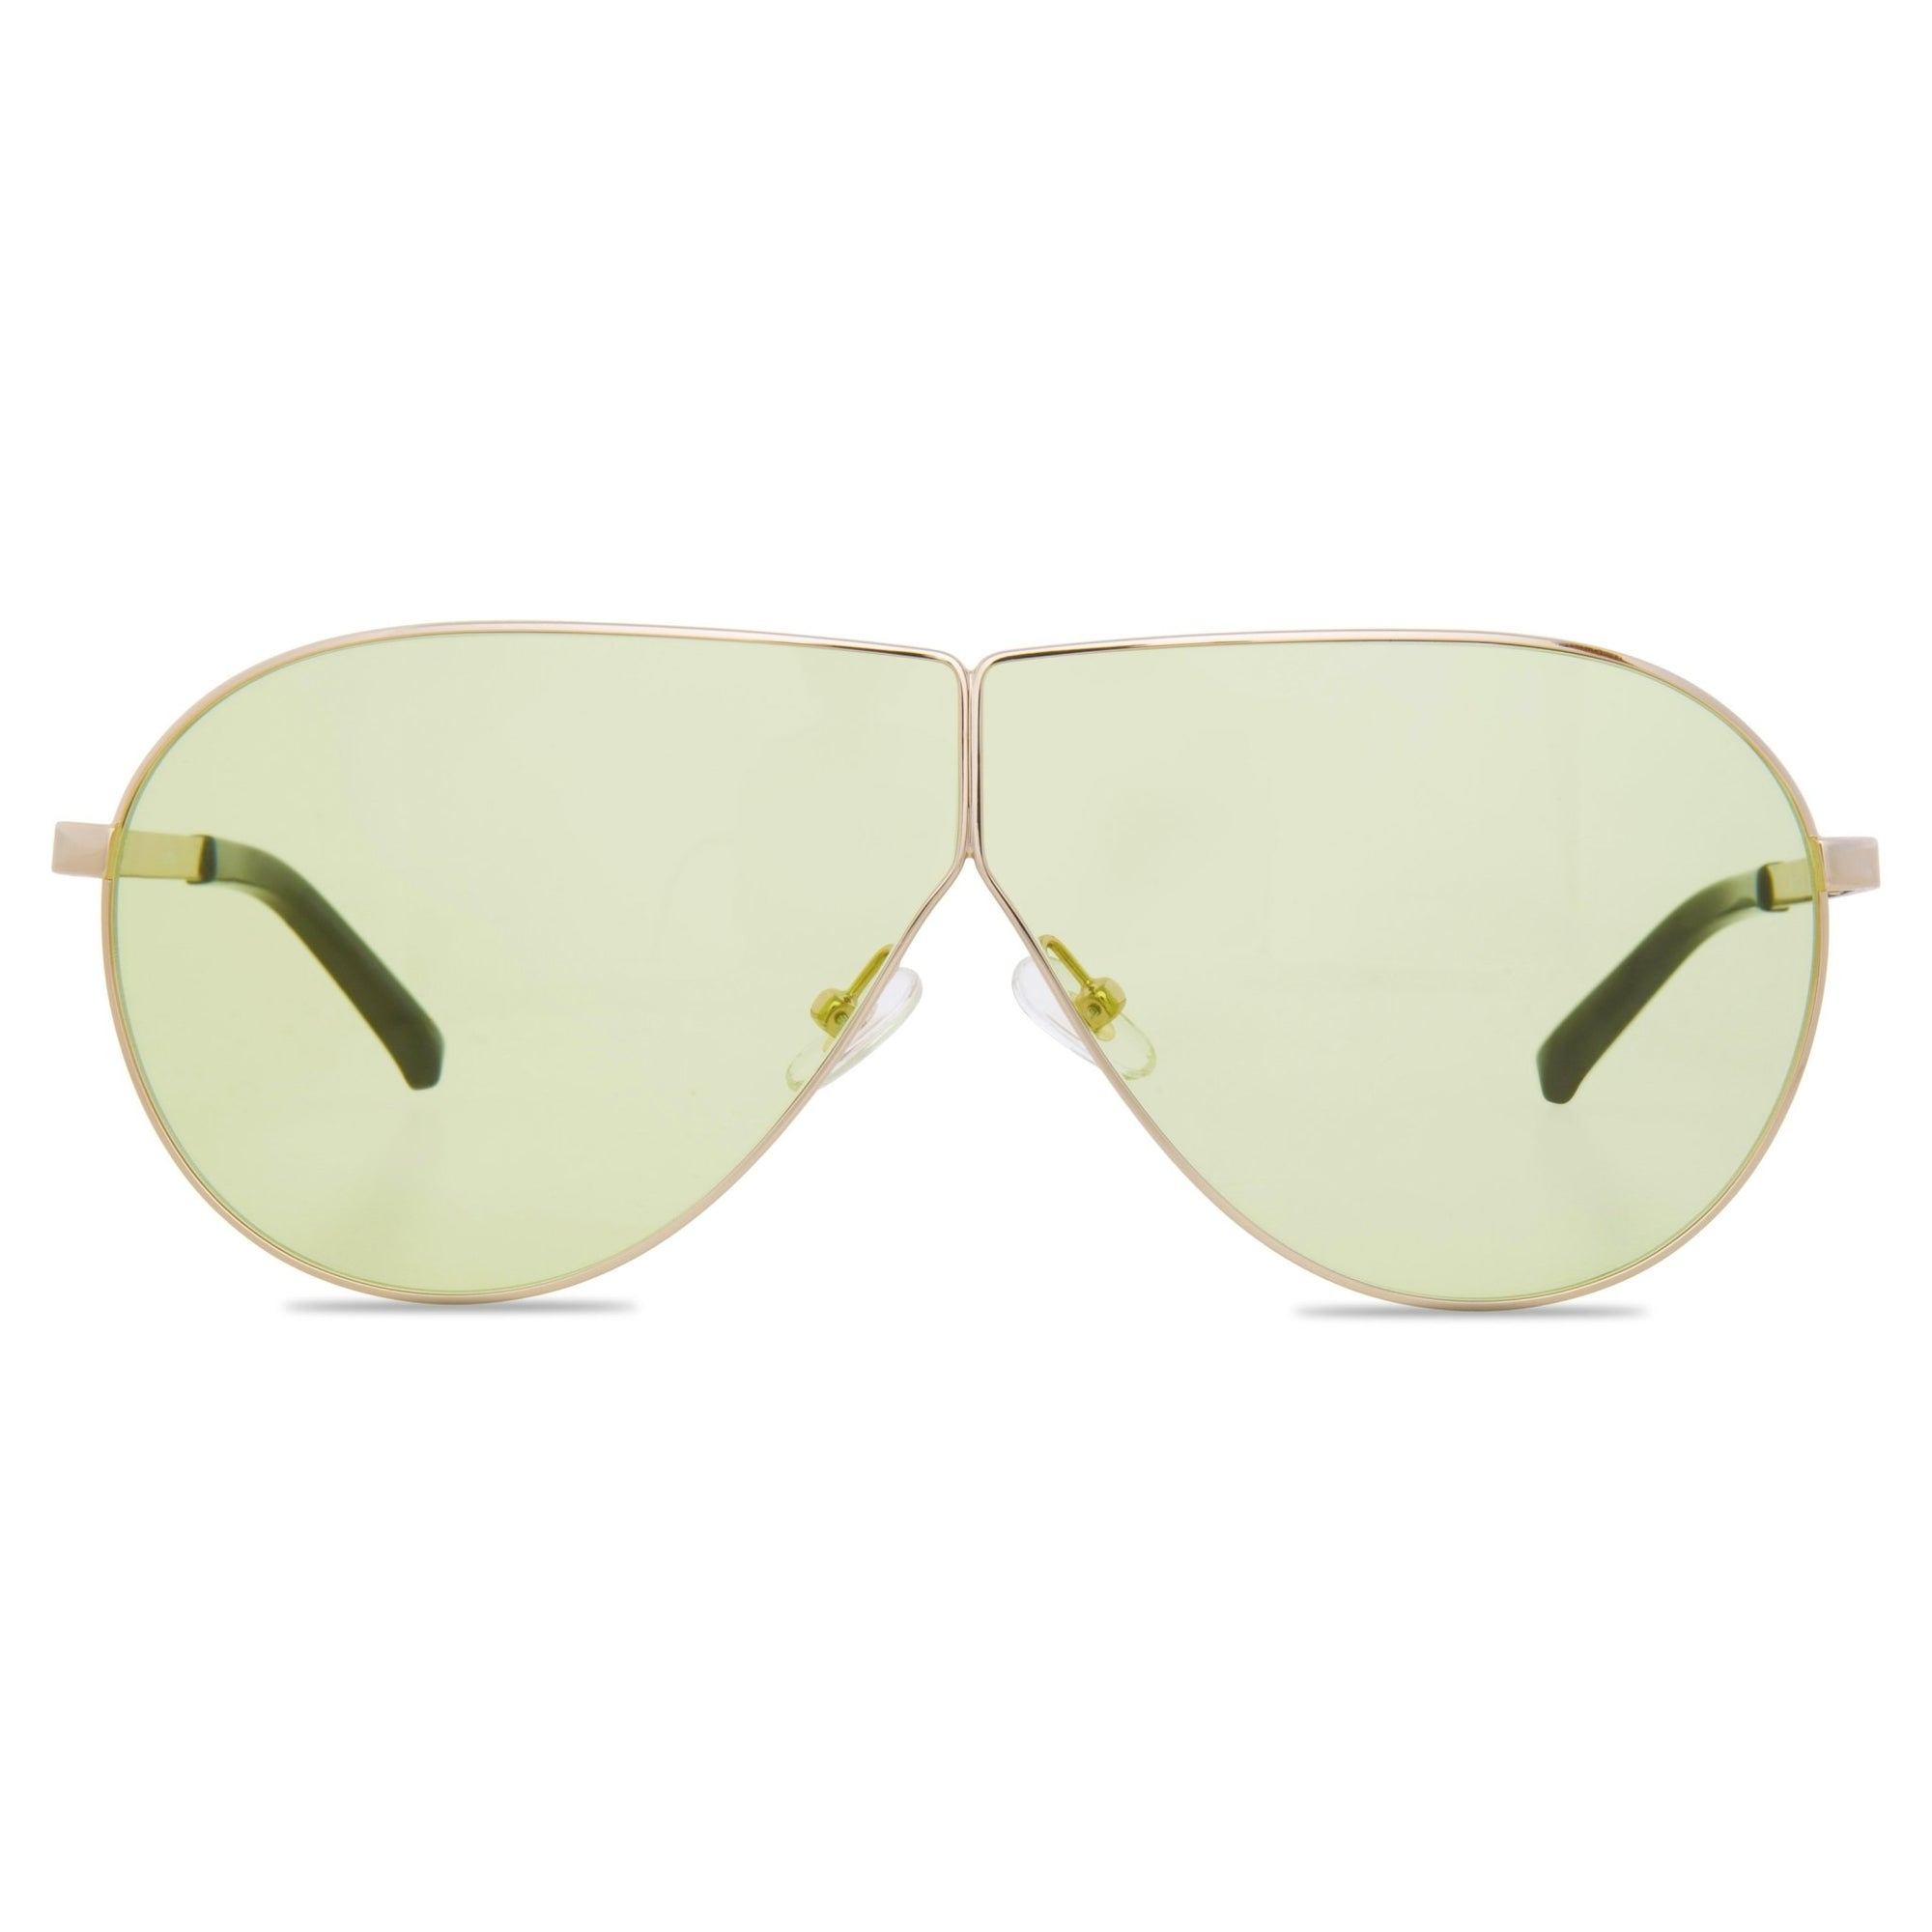 Phillip Lim Sunglasses Women's Shield Shape Light Gold/Black with CAT1 Light Green Lenses PL171C2SUN - Watches & Crystals